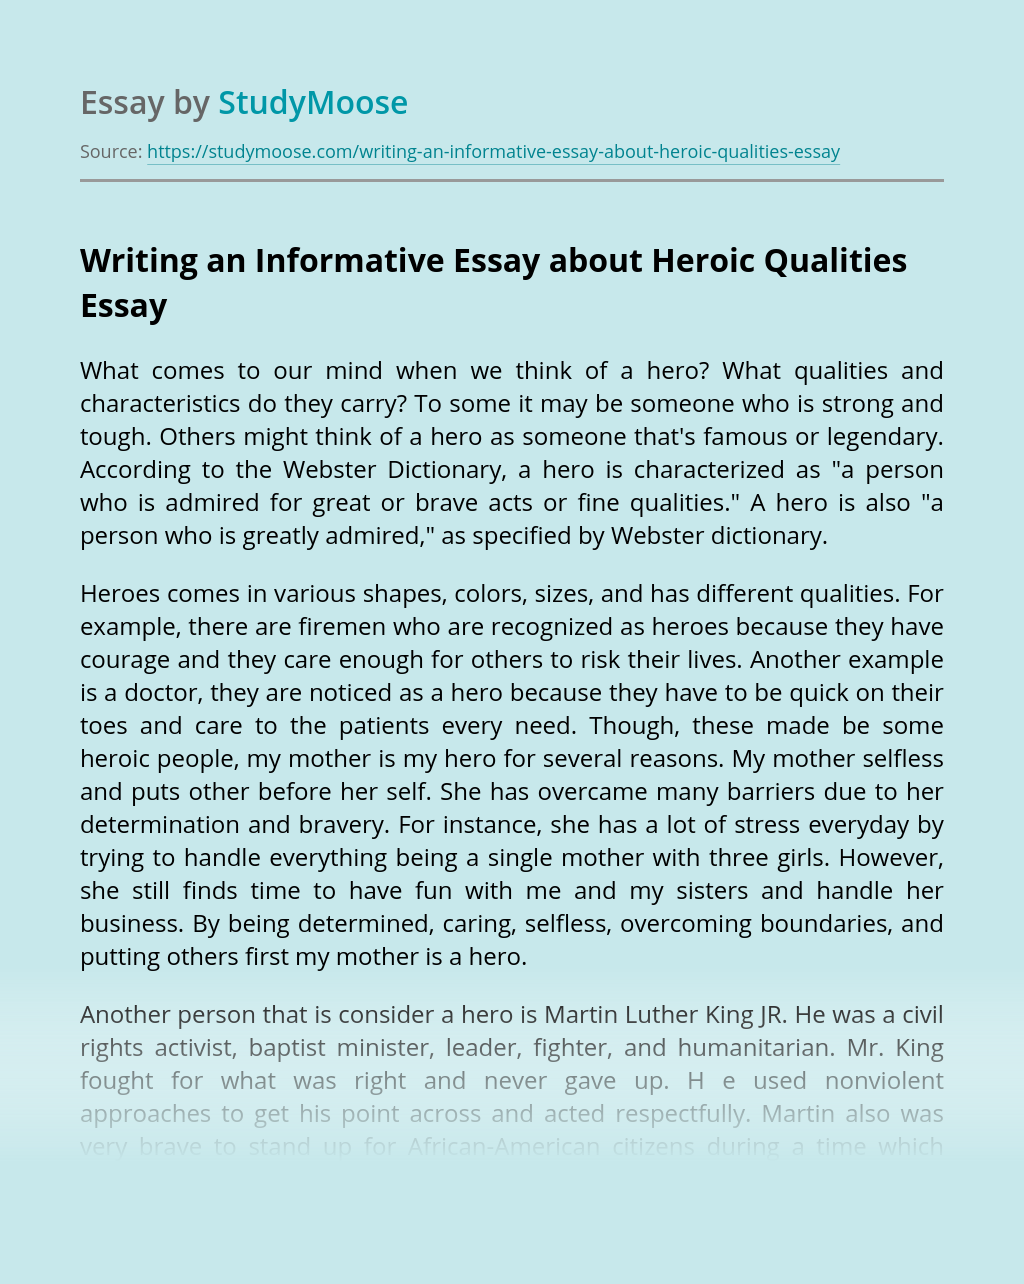 Writing an Informative Essay about Heroic Qualities